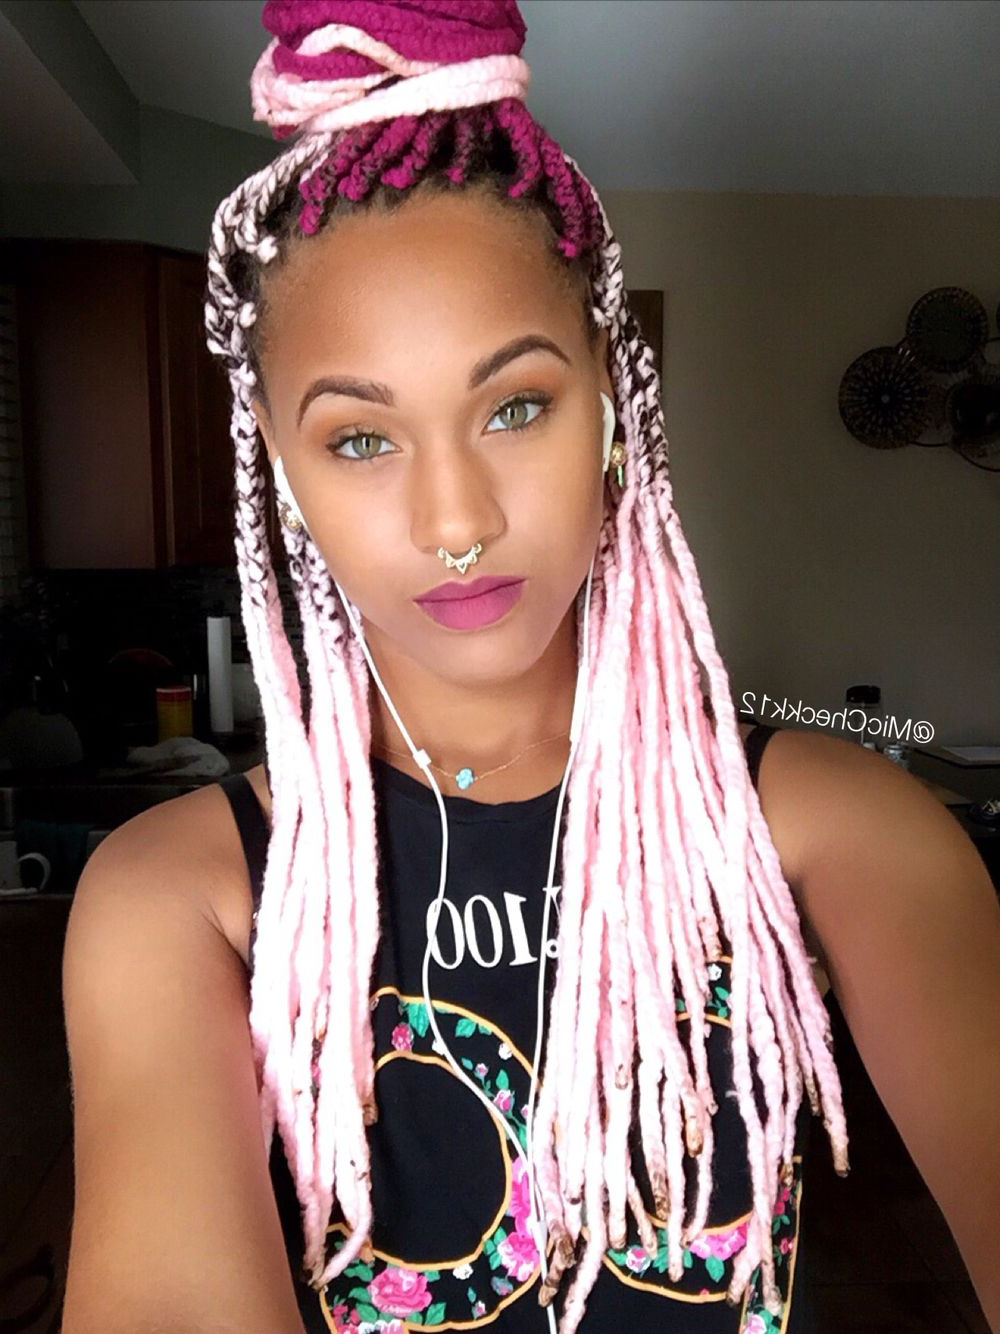 Current Side Swept Yarn Twists Hairstyles With Pinterest (View 17 of 20)